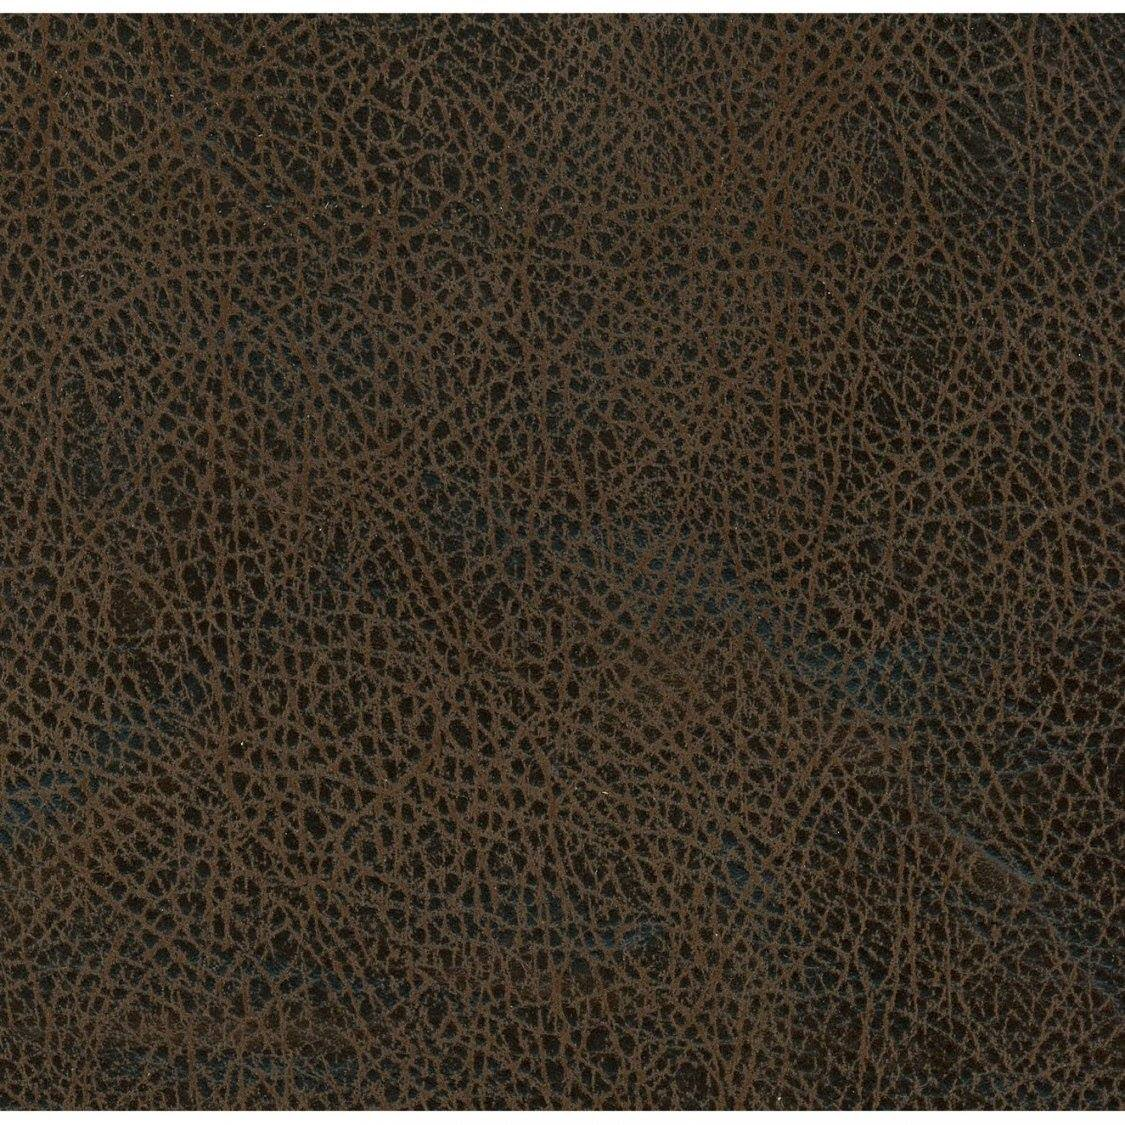 Faux Leather Texture. Brown